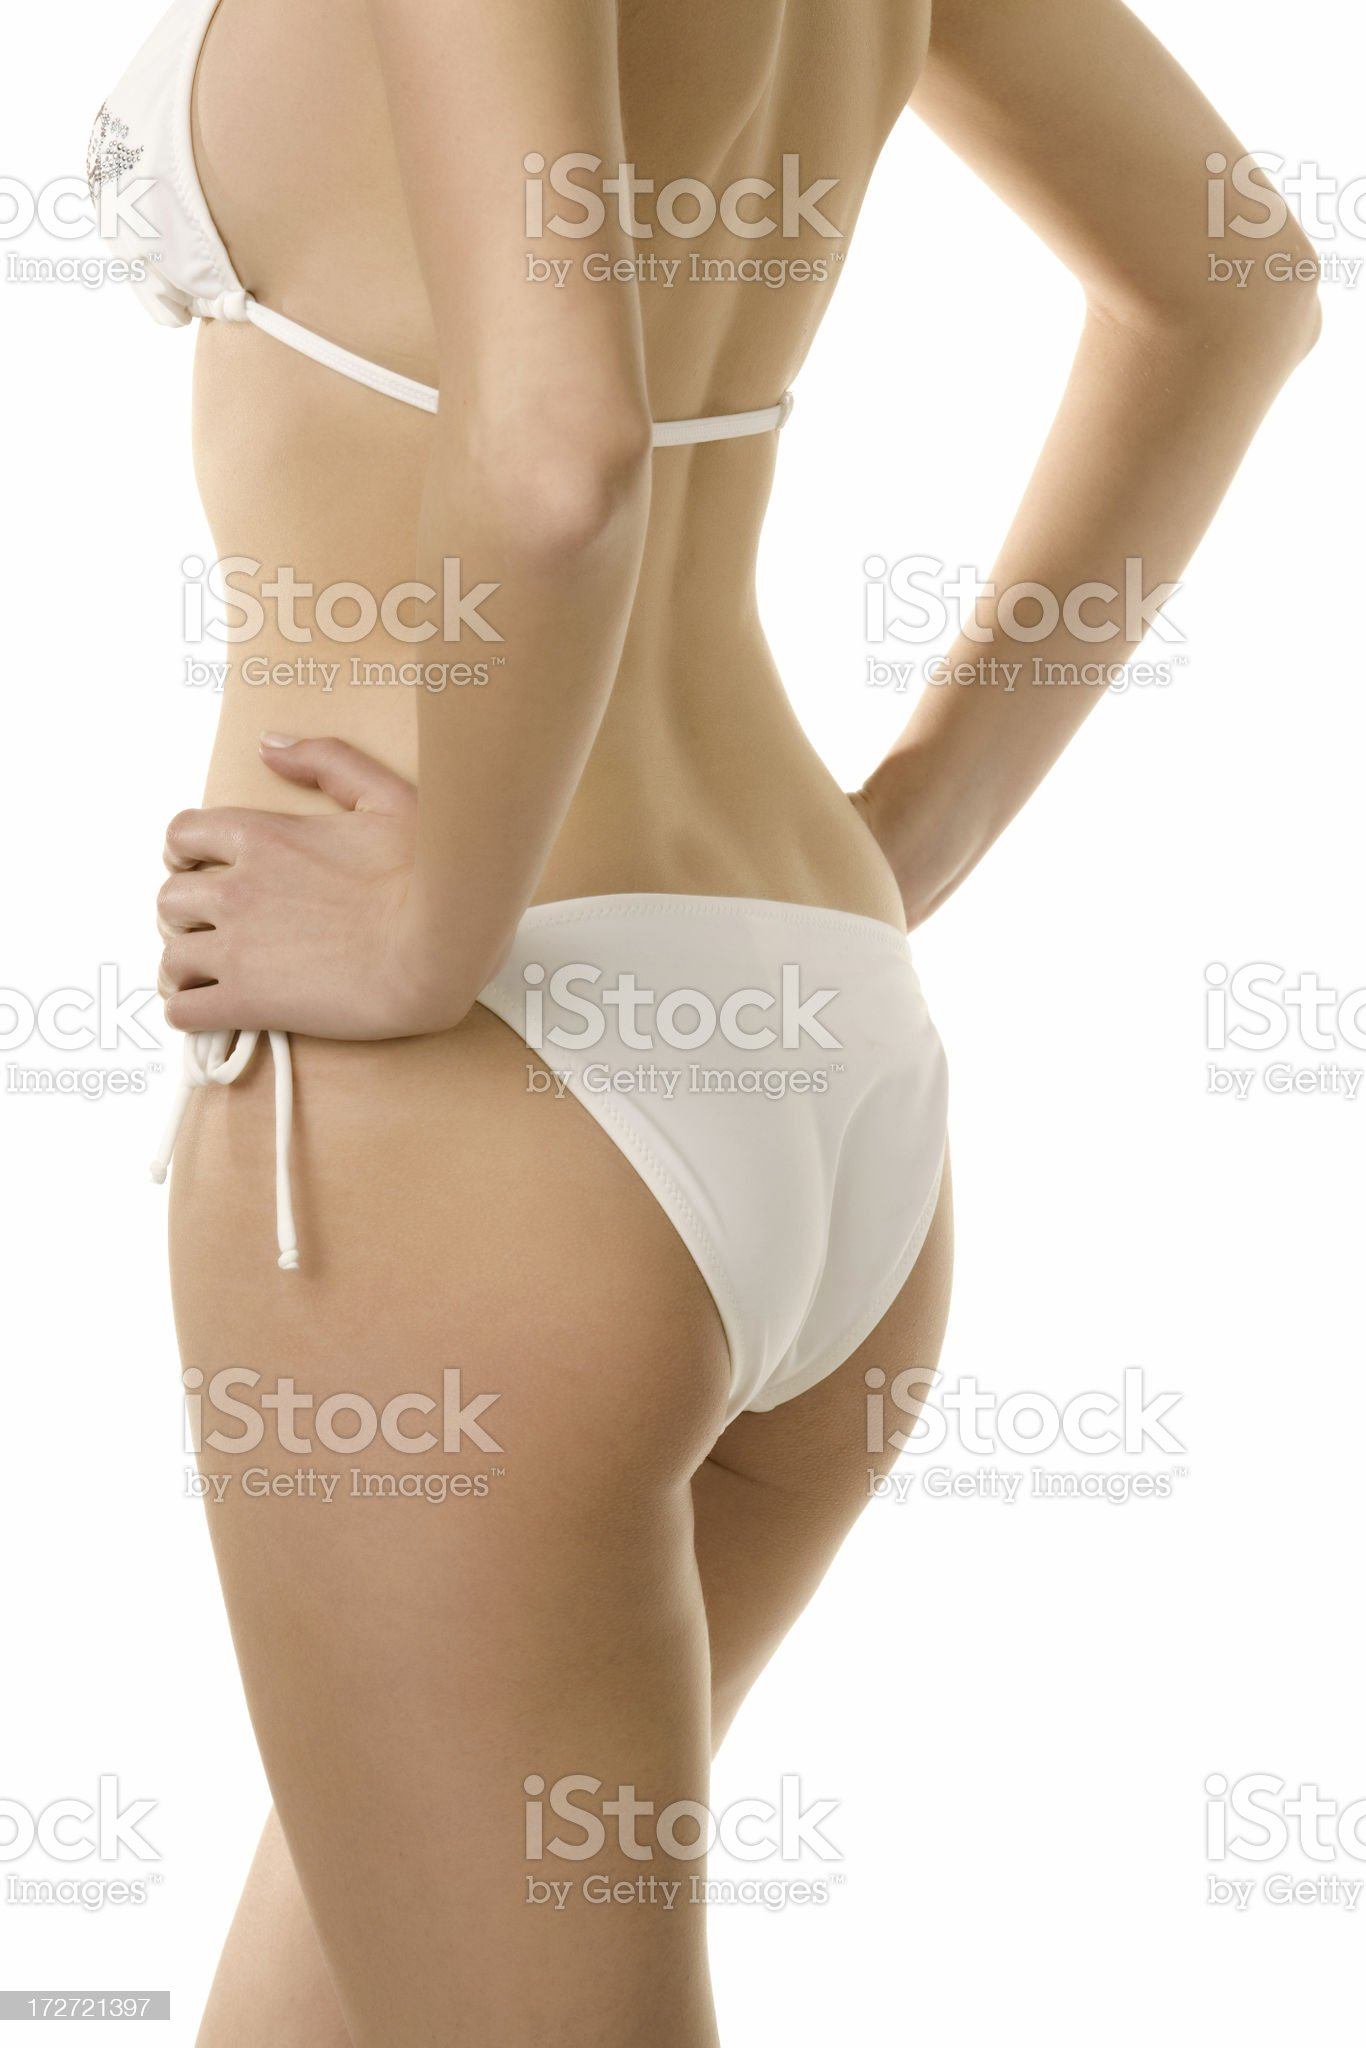 Bikini Woman royalty-free stock photo